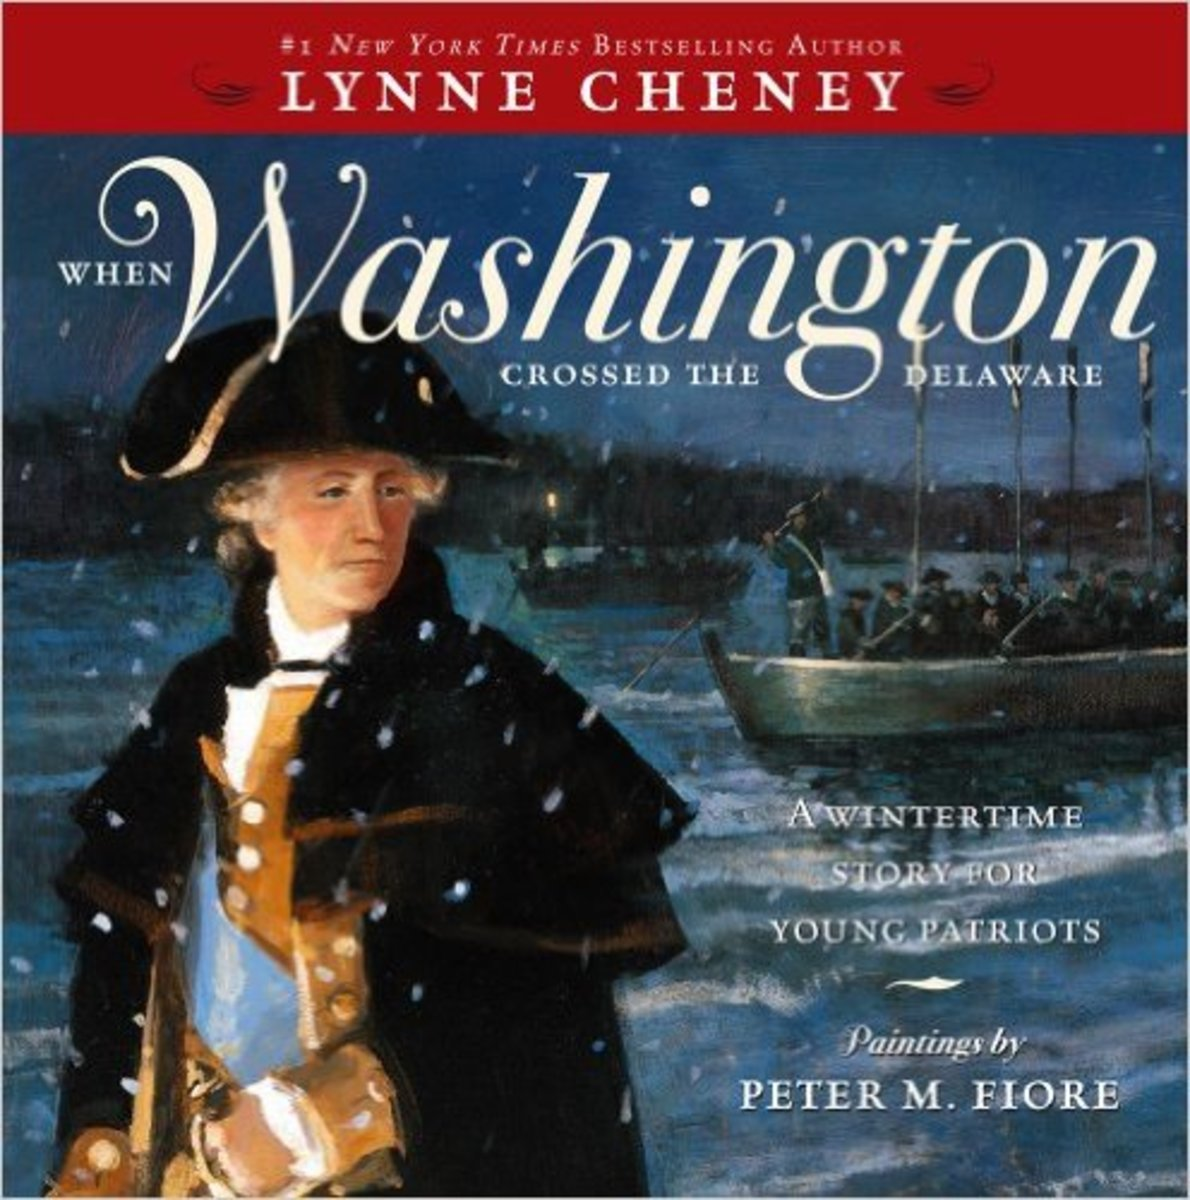 When Washington Crossed the Delaware: A Wintertime Story for Young Patriots by Lynne Cheney